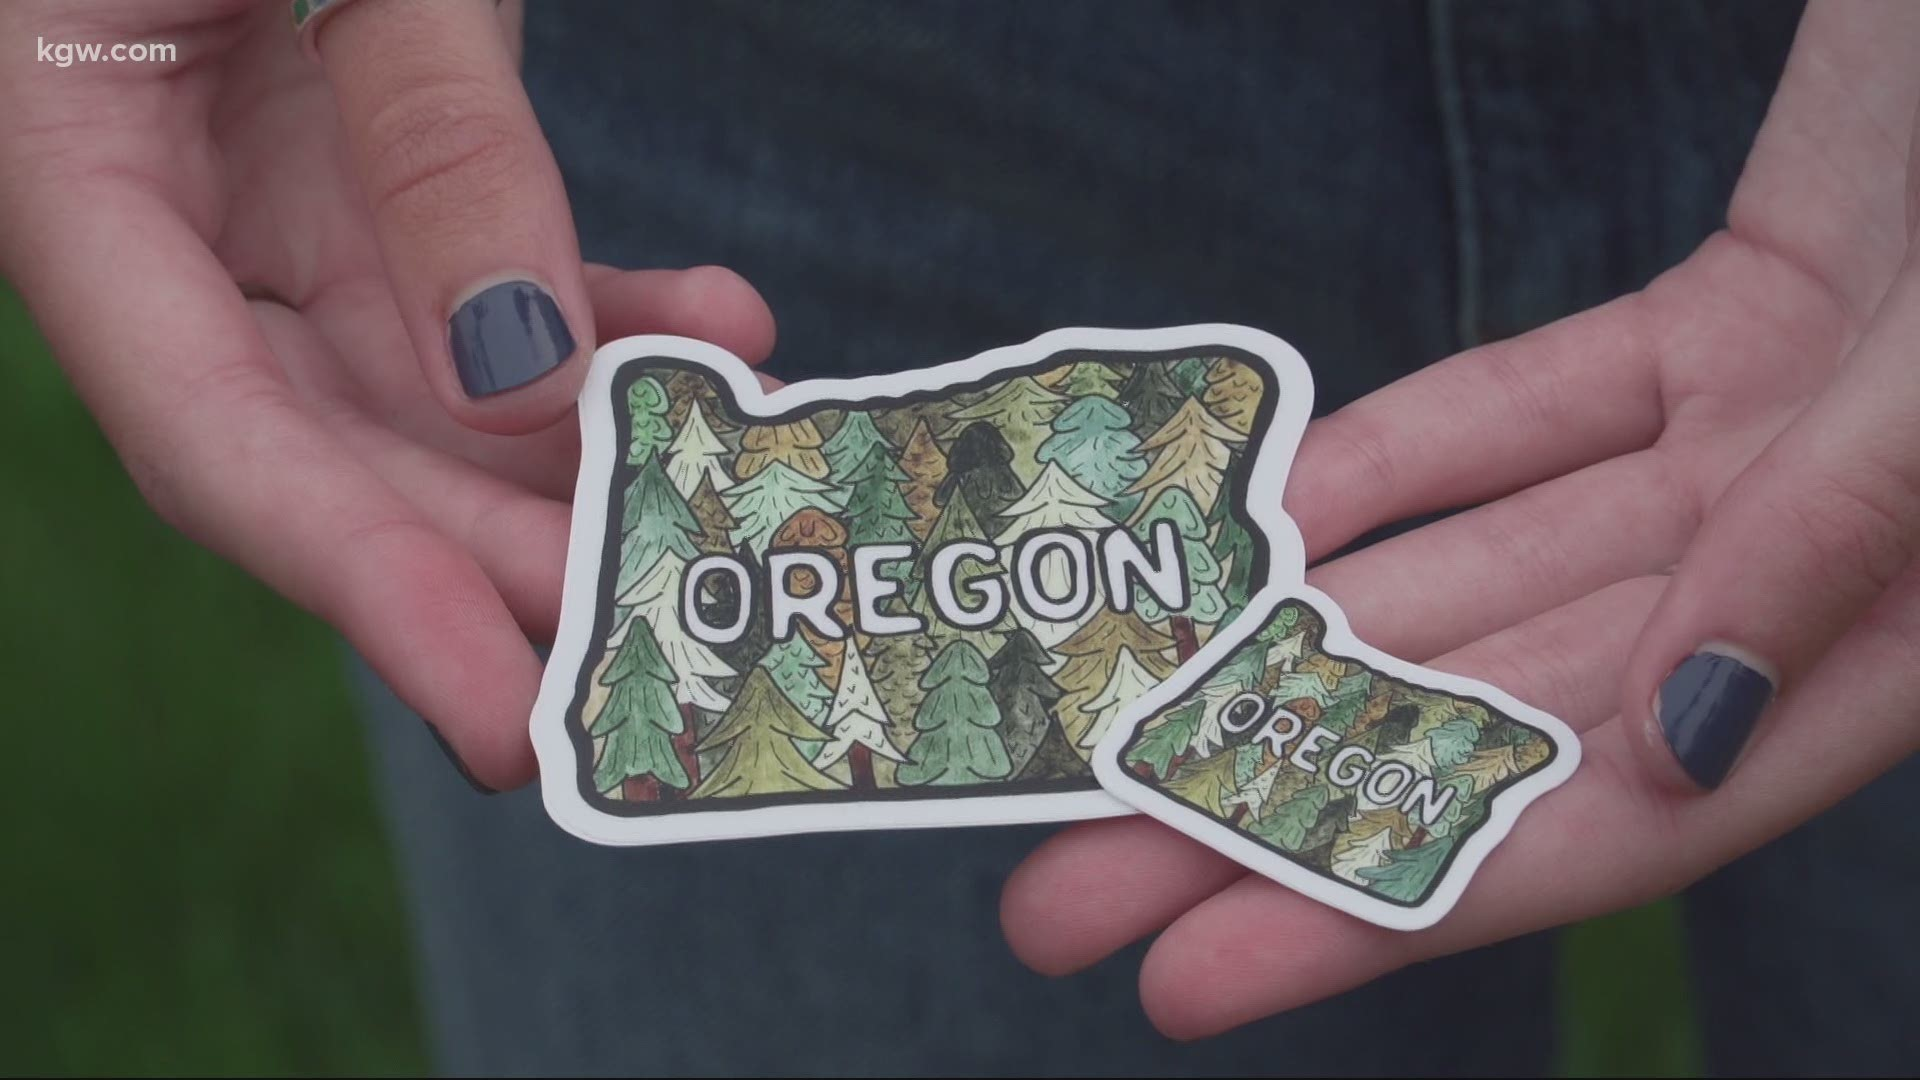 Small businesses raising money for wildfire Oregonians in need | kgw.com